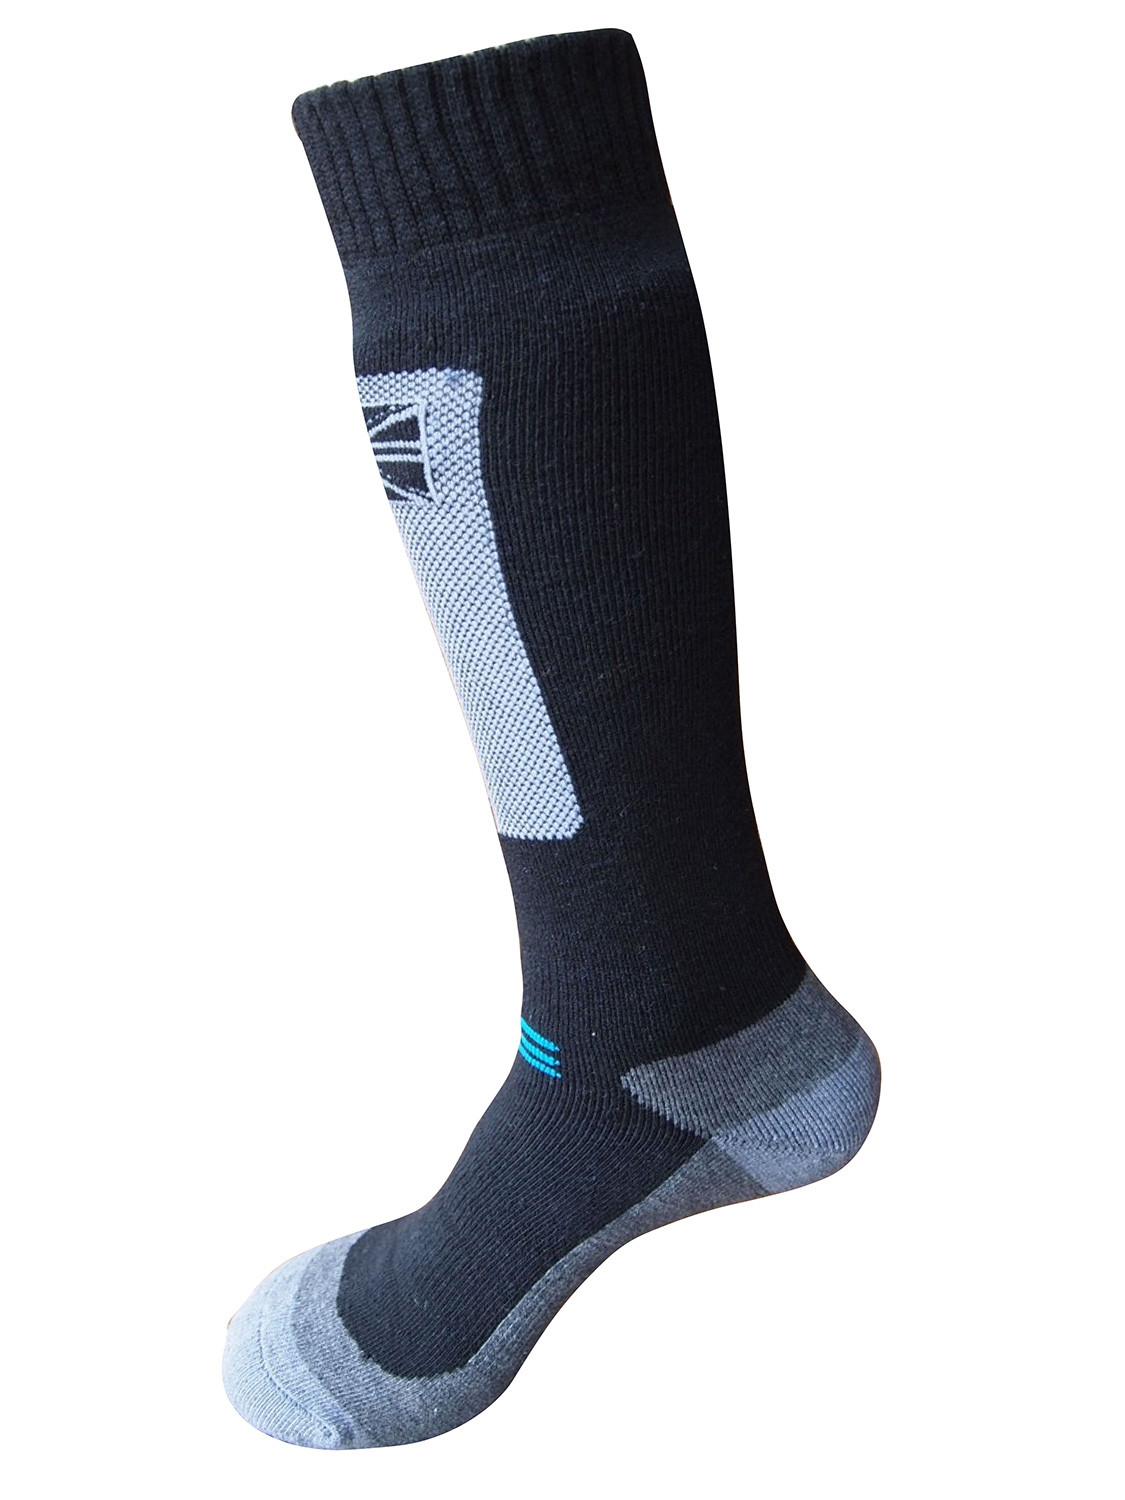 Endurance Merino 1 Pack Ski Sock